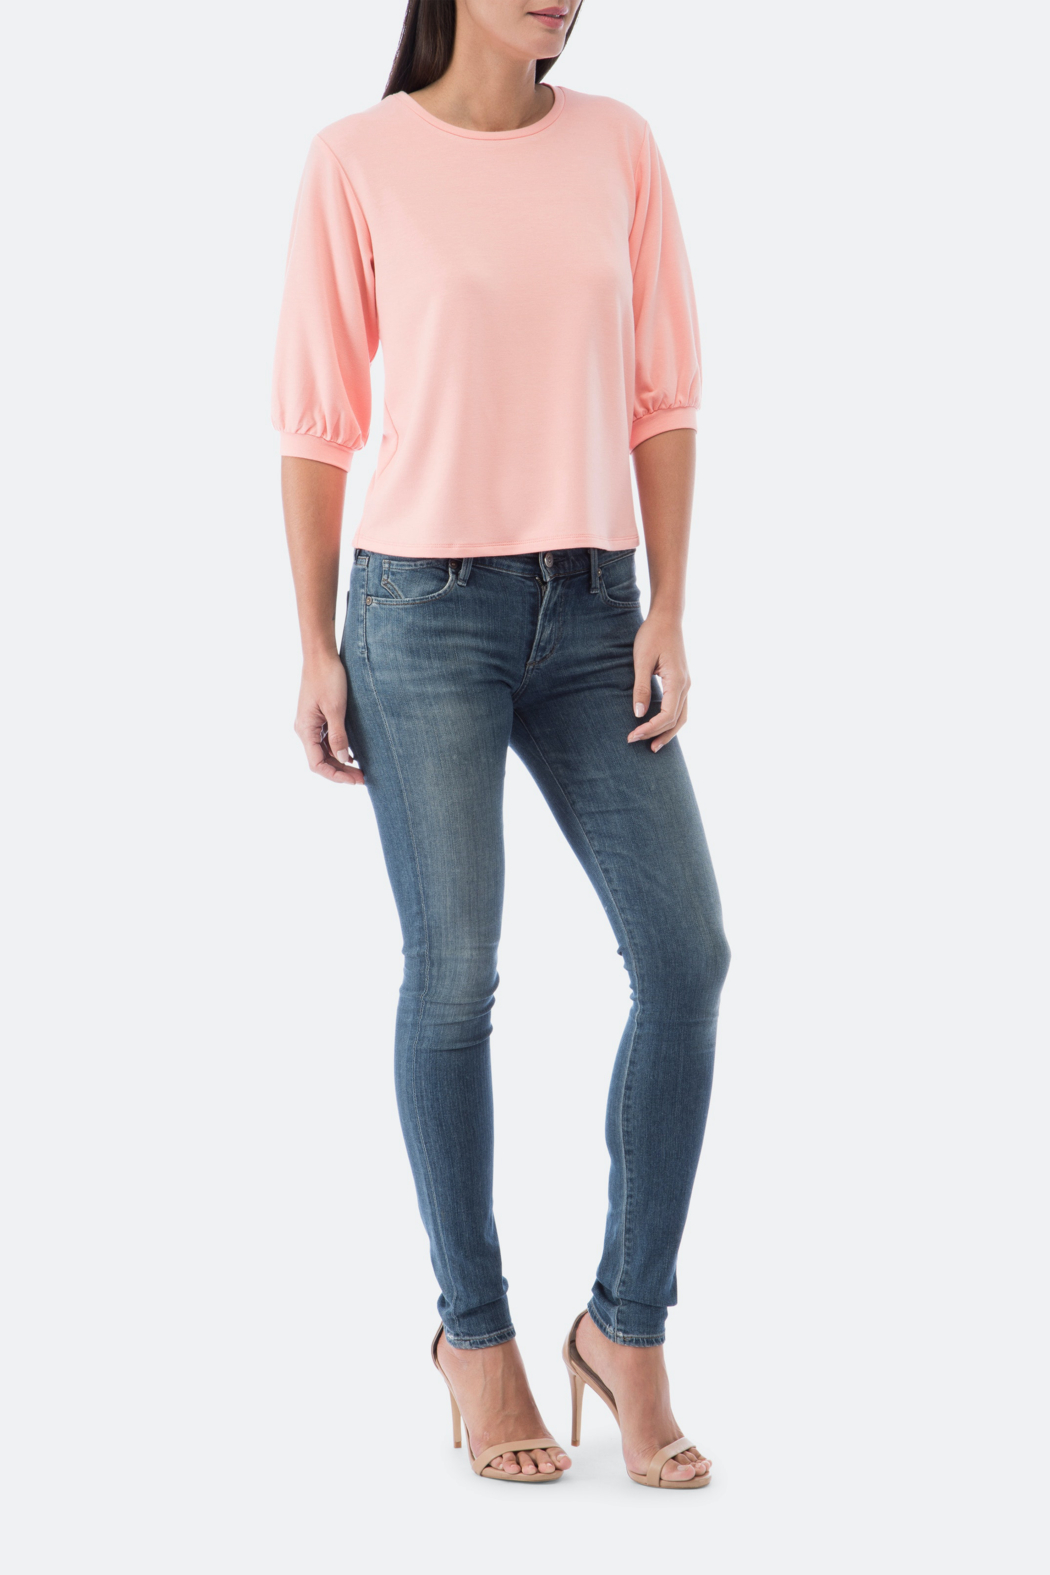 Bobeau Audre Puff Sleeve French Terry Top - Front Full Image